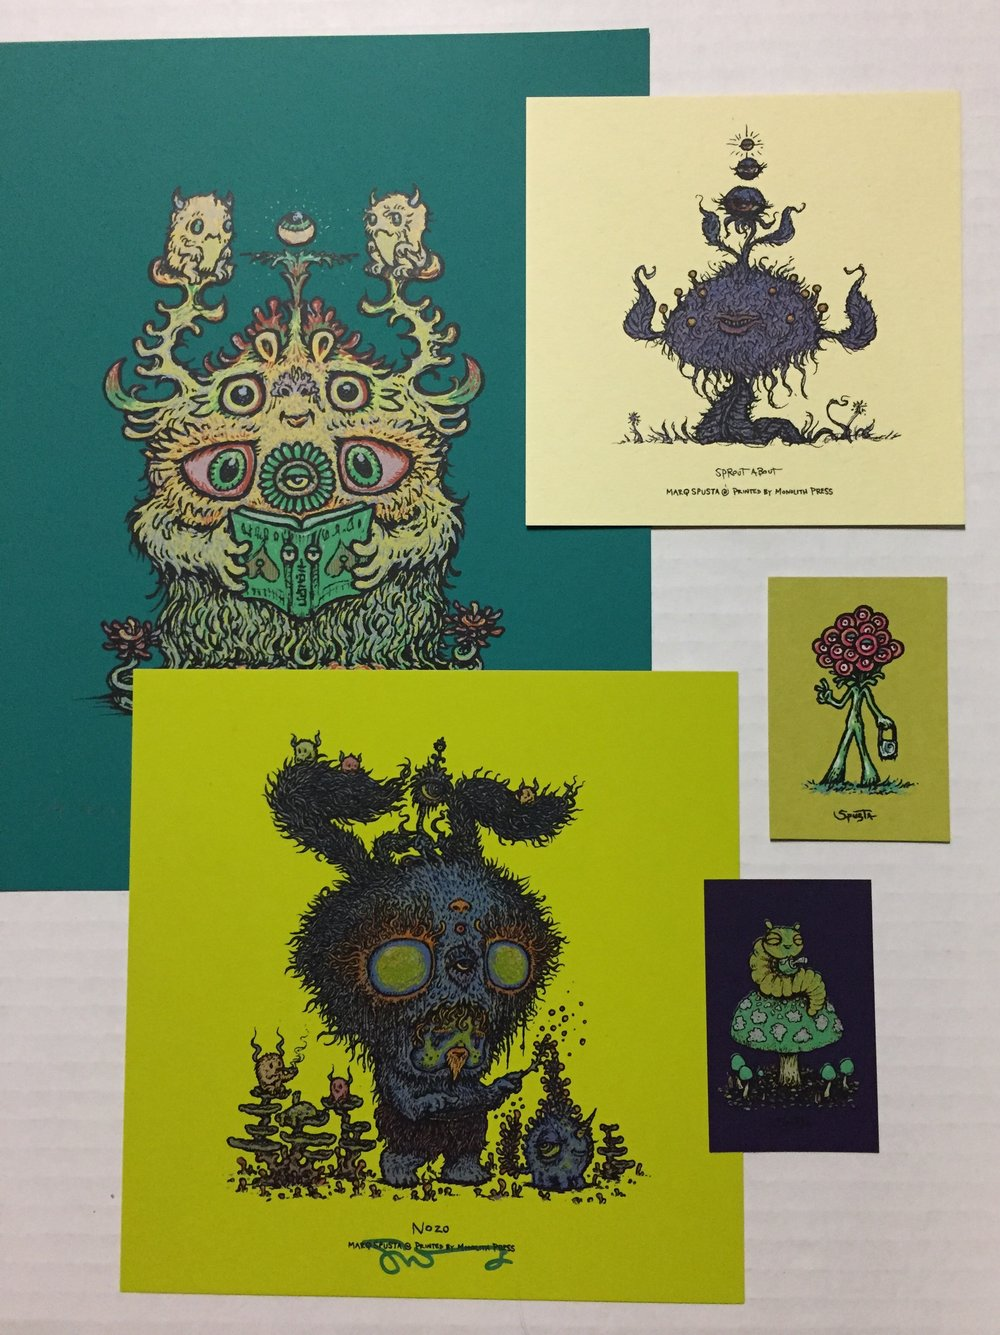 "Teal Variant Litboogel 8"" x 10"" + Absinthe Nozo 7"" x 7"" + minis pictured"